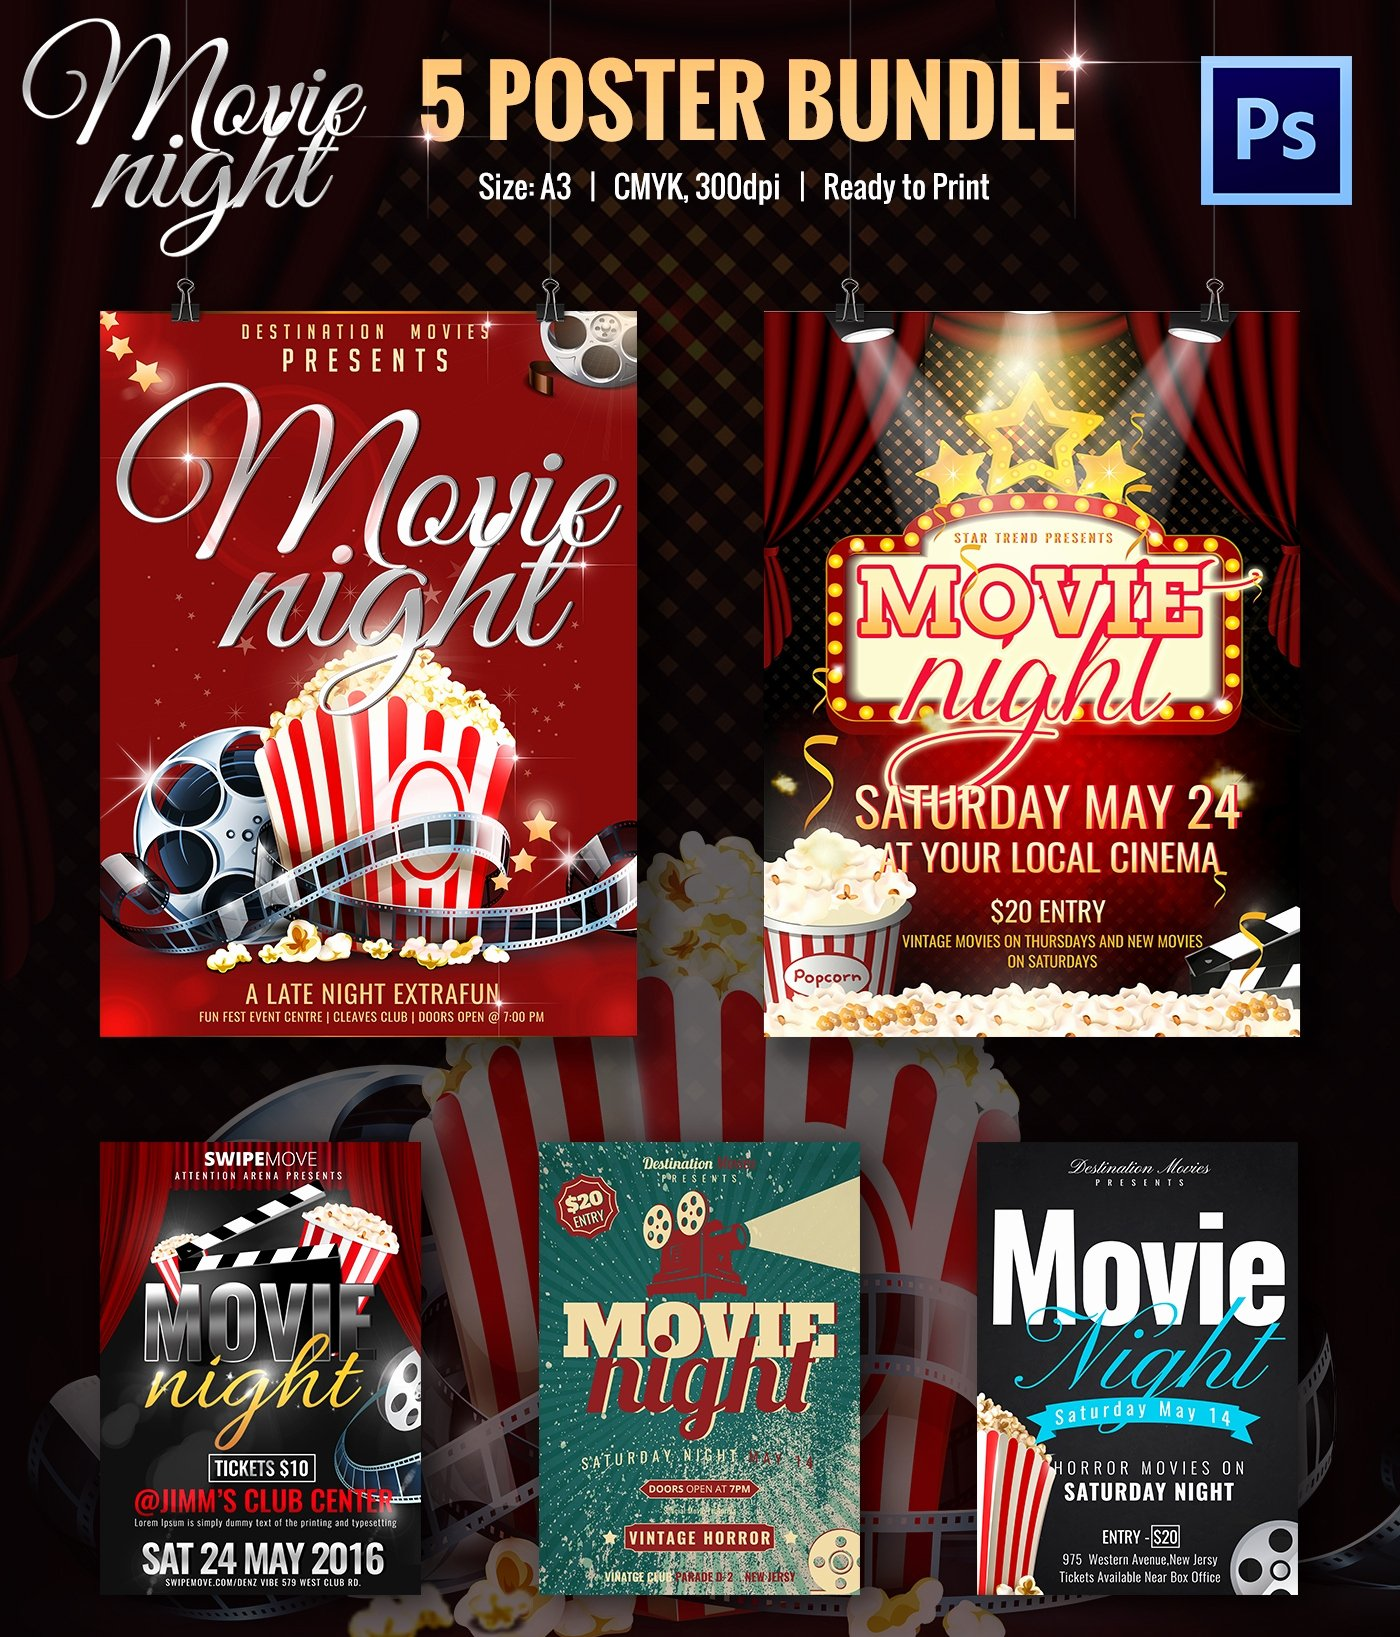 Movie Night Poster Template Lovely Movie Night Flyer Template 25 Free Jpg Psd format Download